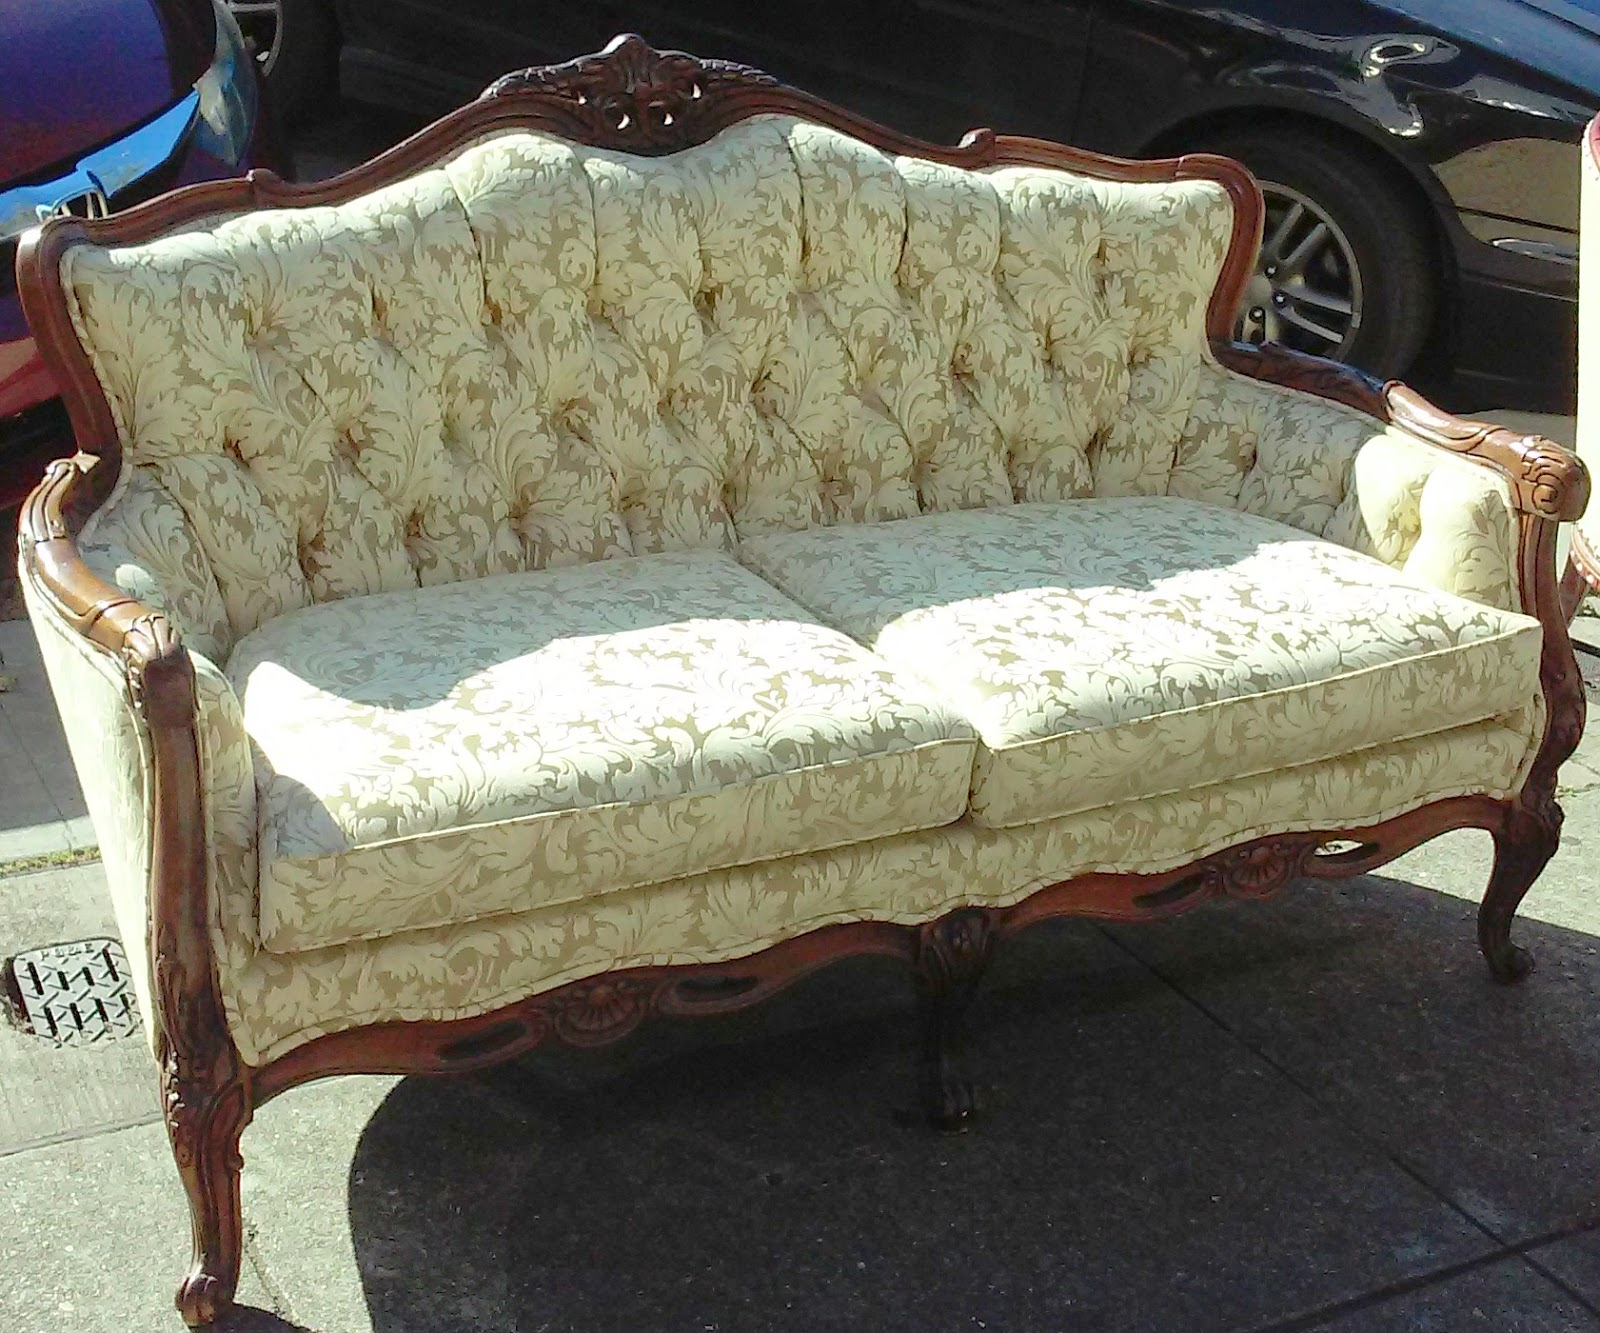 craftsmen furniture. SOLD**REDUCED** Tailored By Craftsmen French Style Sofa - $195 Furniture T